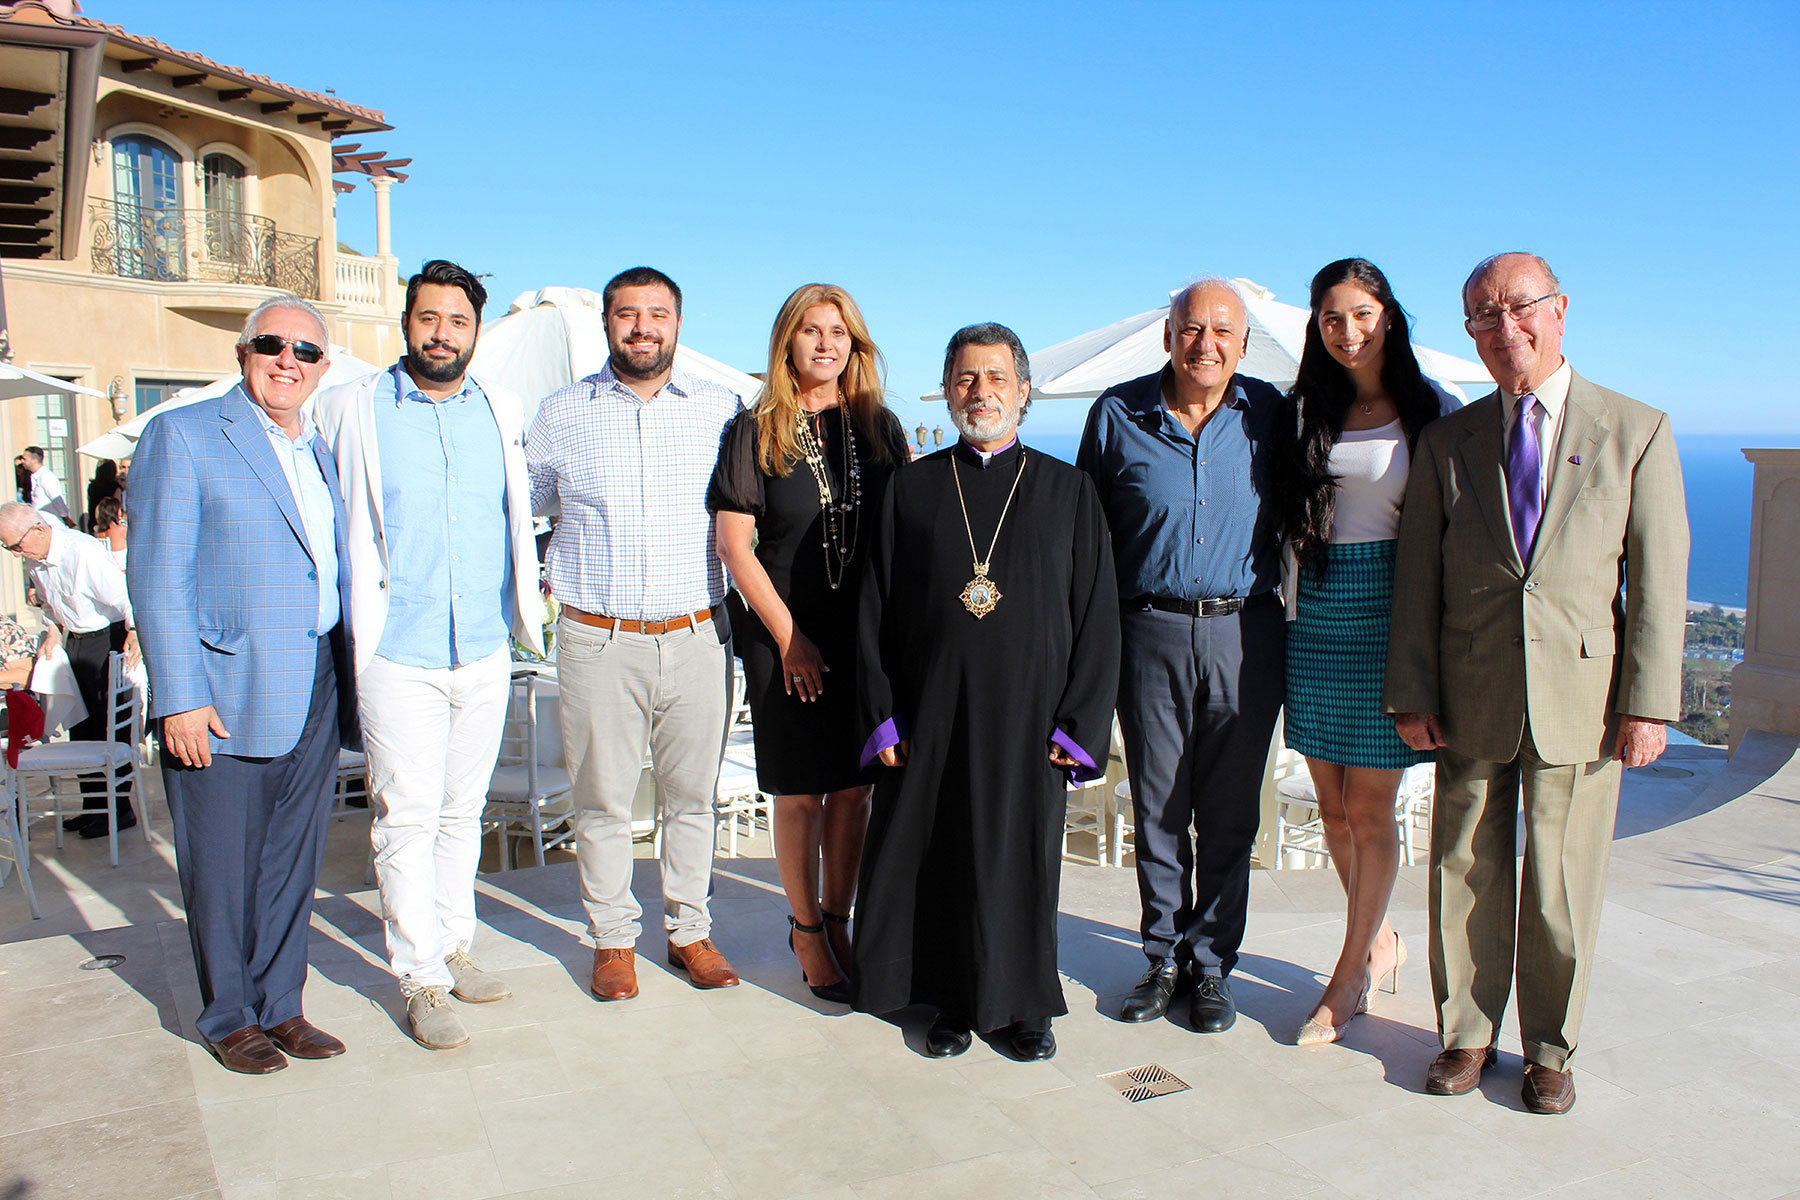 Ohanian Family with Armenian American Museum Leaders at Malibu Reception